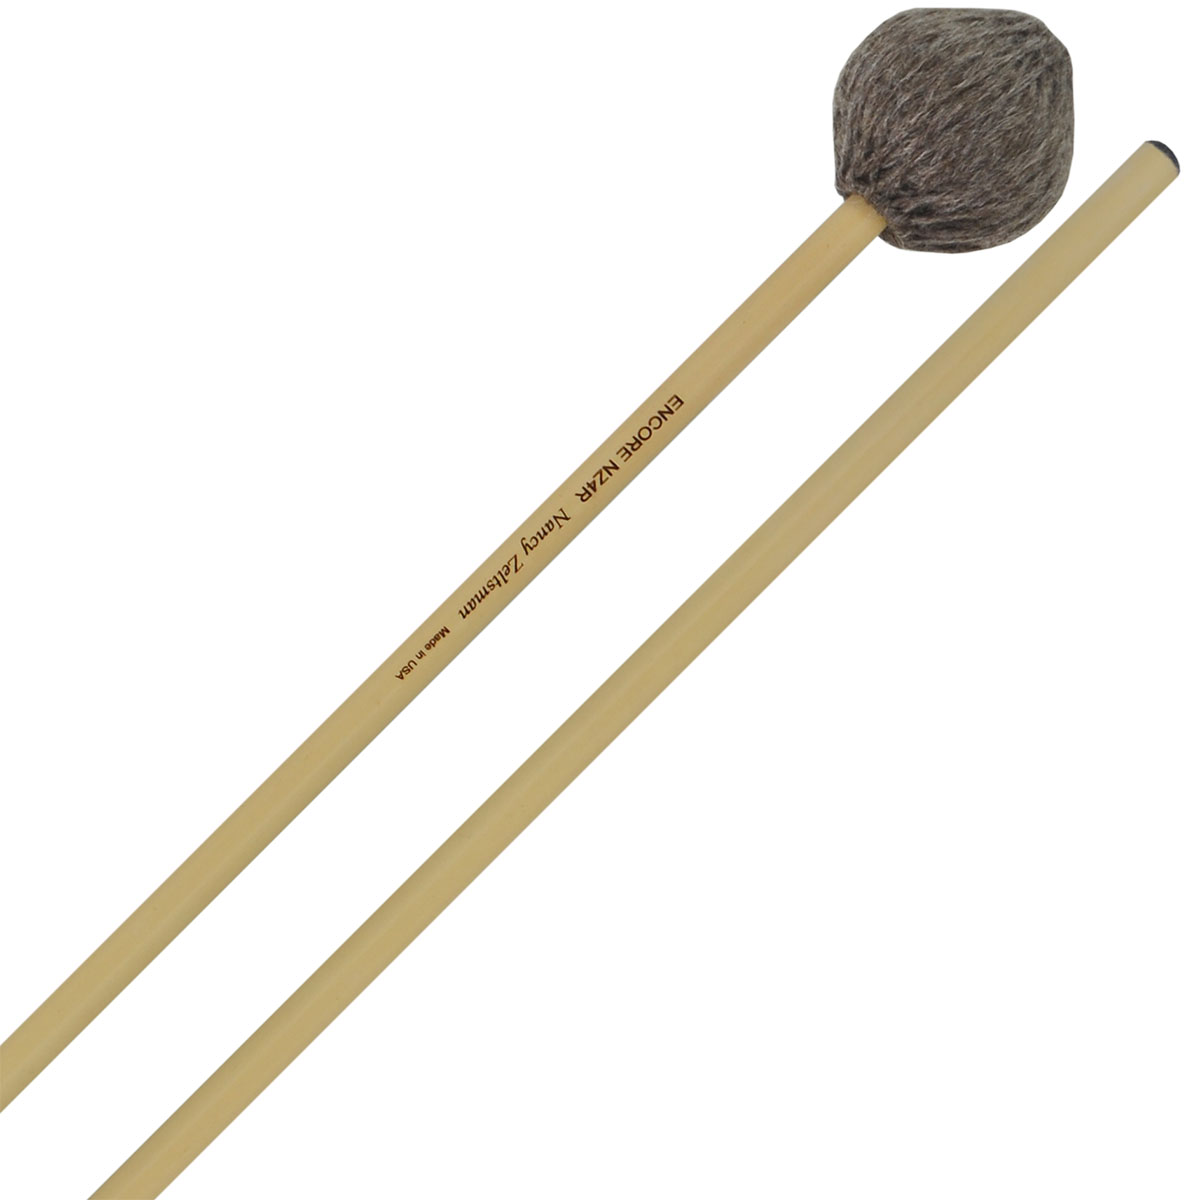 Encore Nancy Zeltsman Signature Medium Marimba Mallets with Rattan Shafts